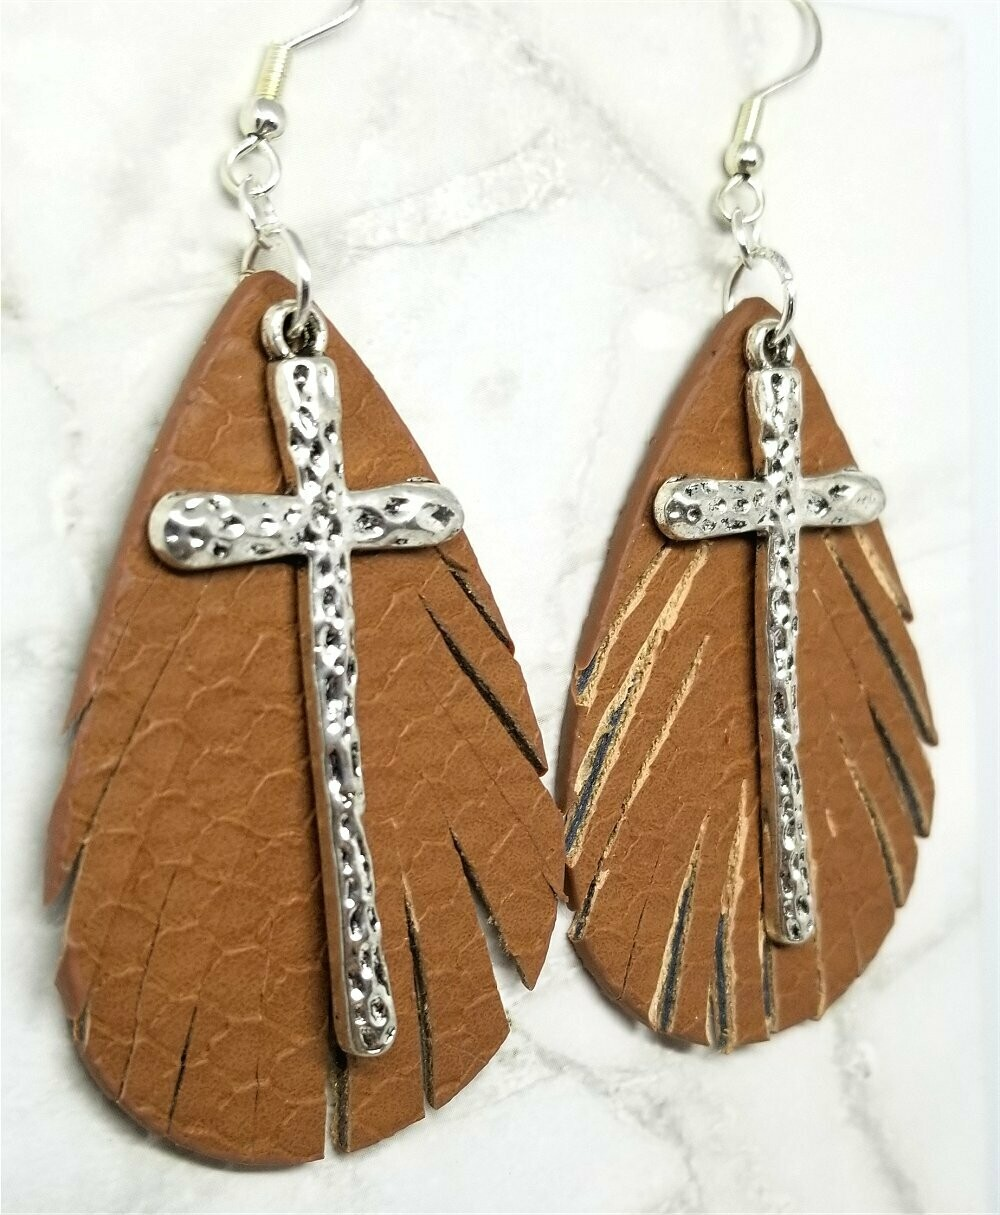 Brown Fringed Faux Leather Teardrop Shaped Earrings with a Large Cross Overlay